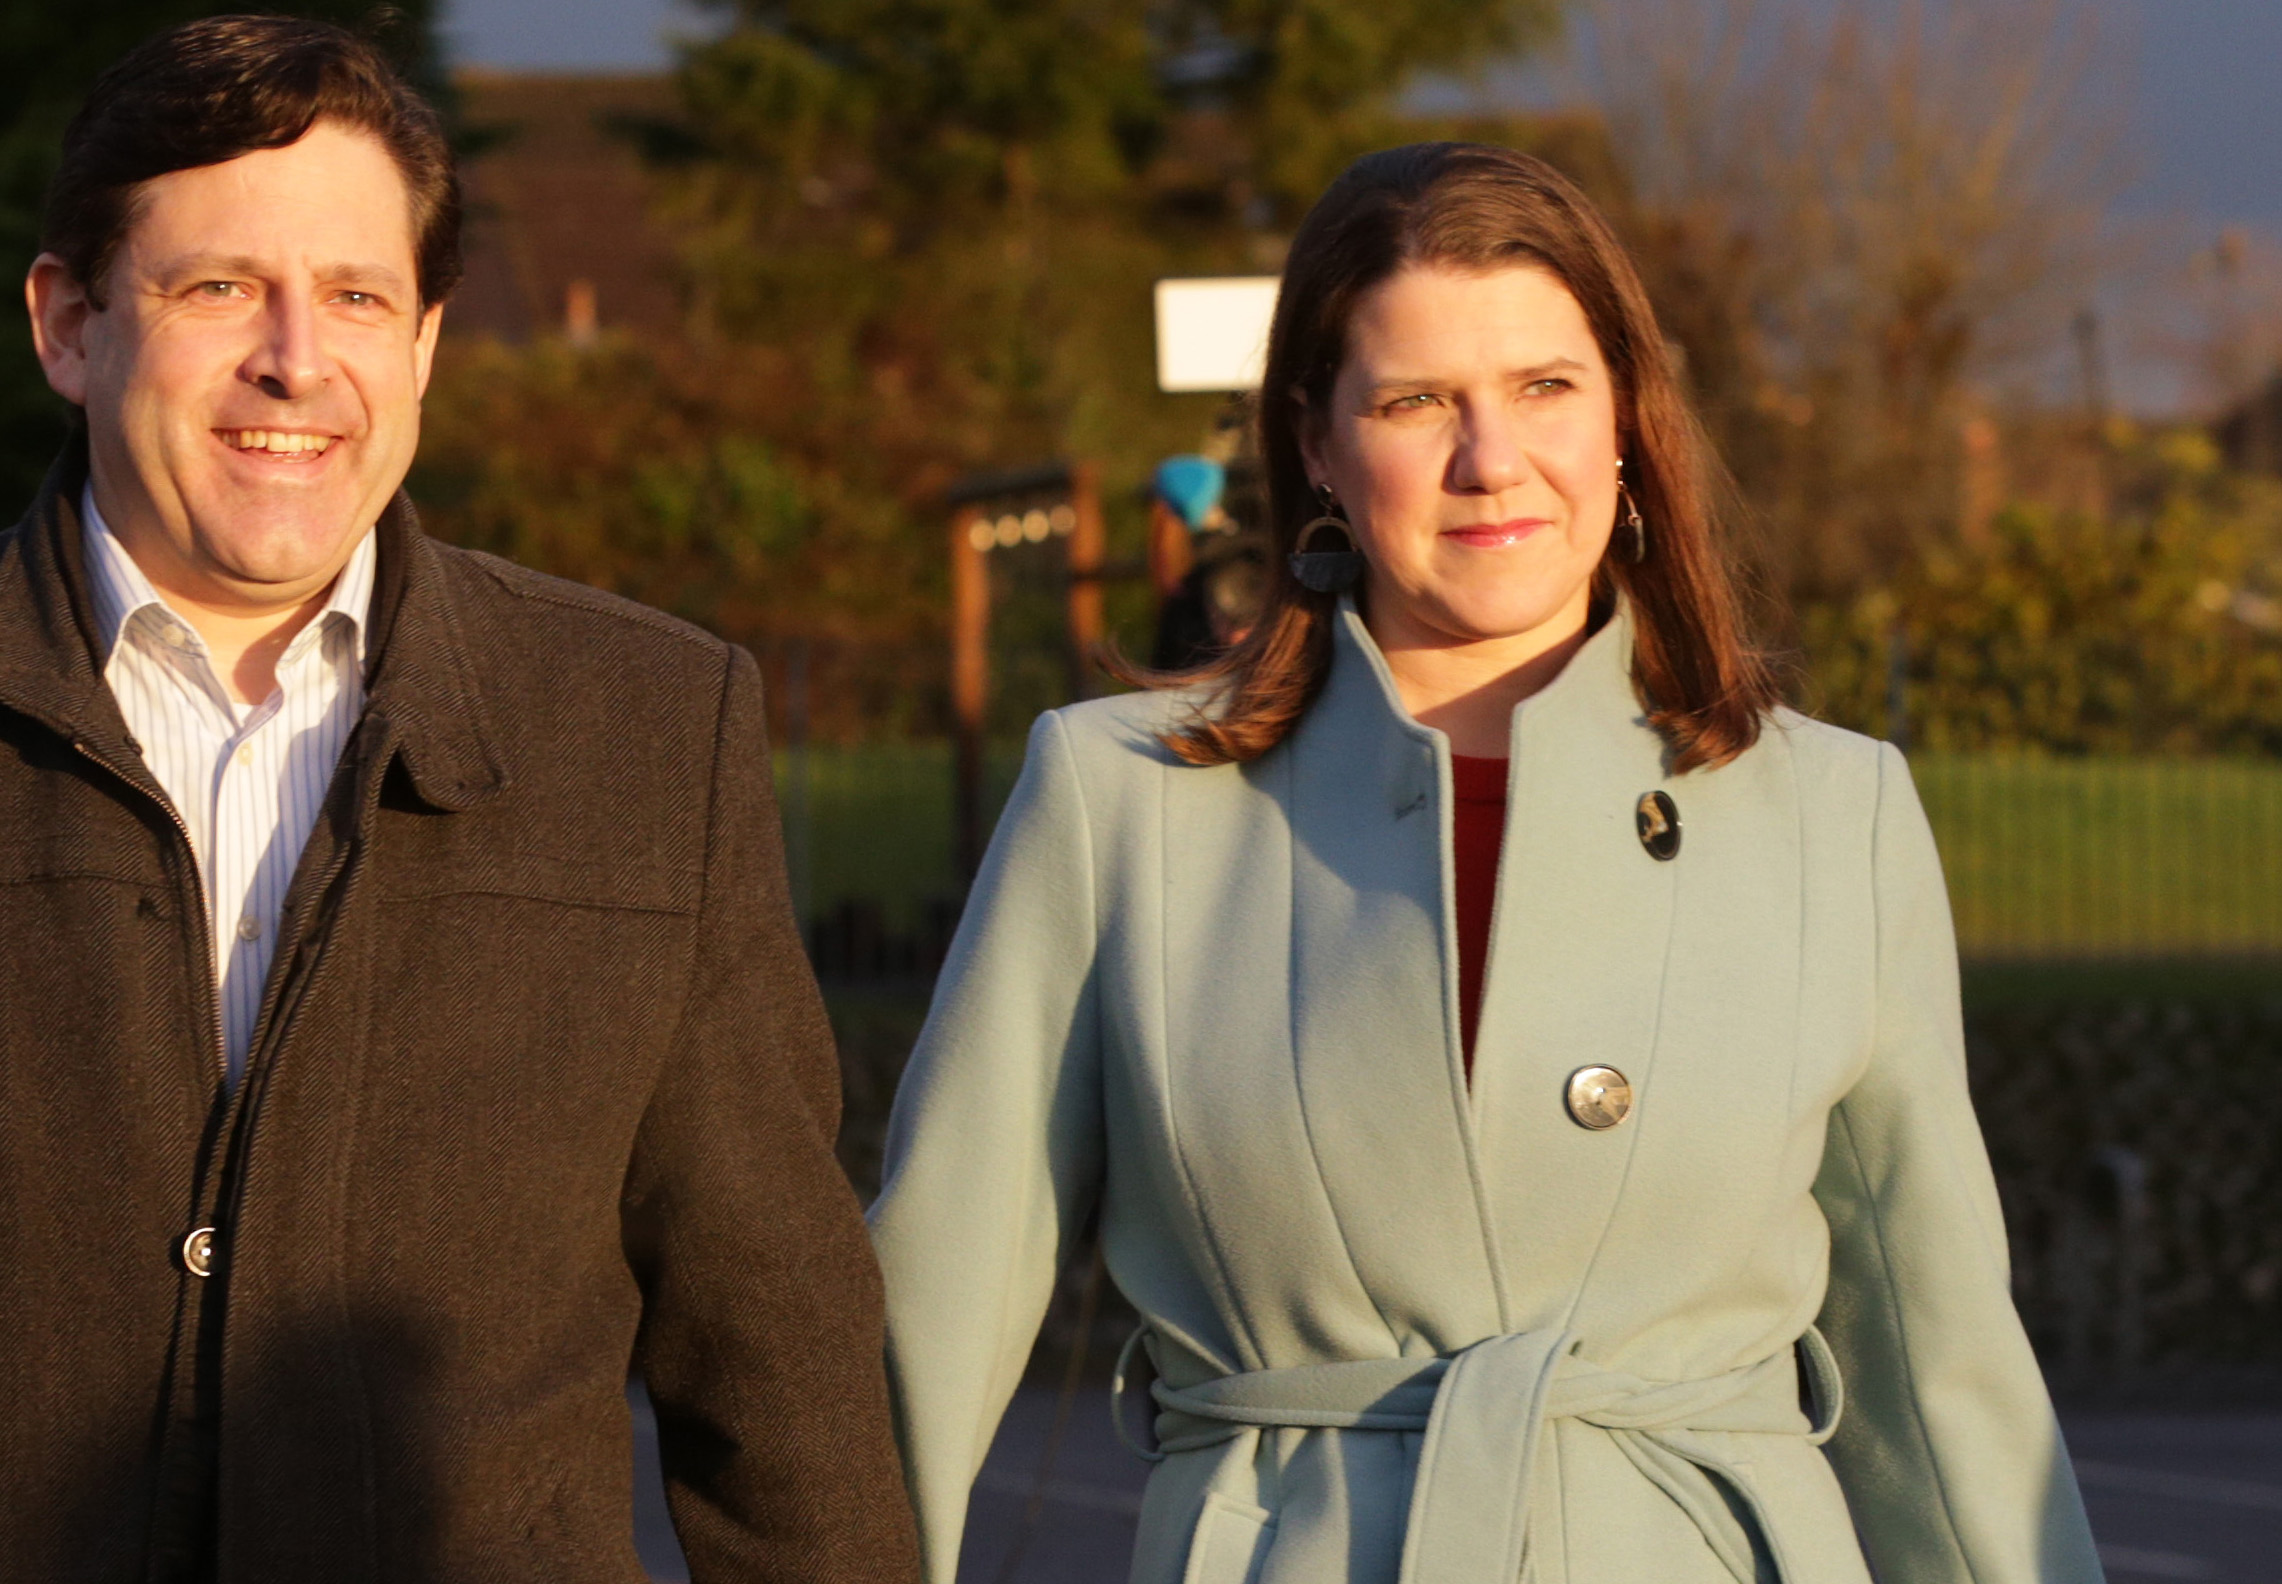 BEARSDEN, UNITED KINGDOM - DECEMBER 12: Liberal Democrat Leader Jo Swinson and her husband Duncan Hames arrive to vote at Castlehill Primary School on December 12, 2019 in Bearsden, near Glasgow, Scotland. The current Conservative Prime Minister Boris Johnson called the first UK winter election for nearly a century in an attempt to gain a working majority to break the parliamentary deadlock over Brexit. The election results from across the country are being counted overnight and an overall result is expected in the early hours of Friday morning.  (Photo by David Cheskin/Getty Images)